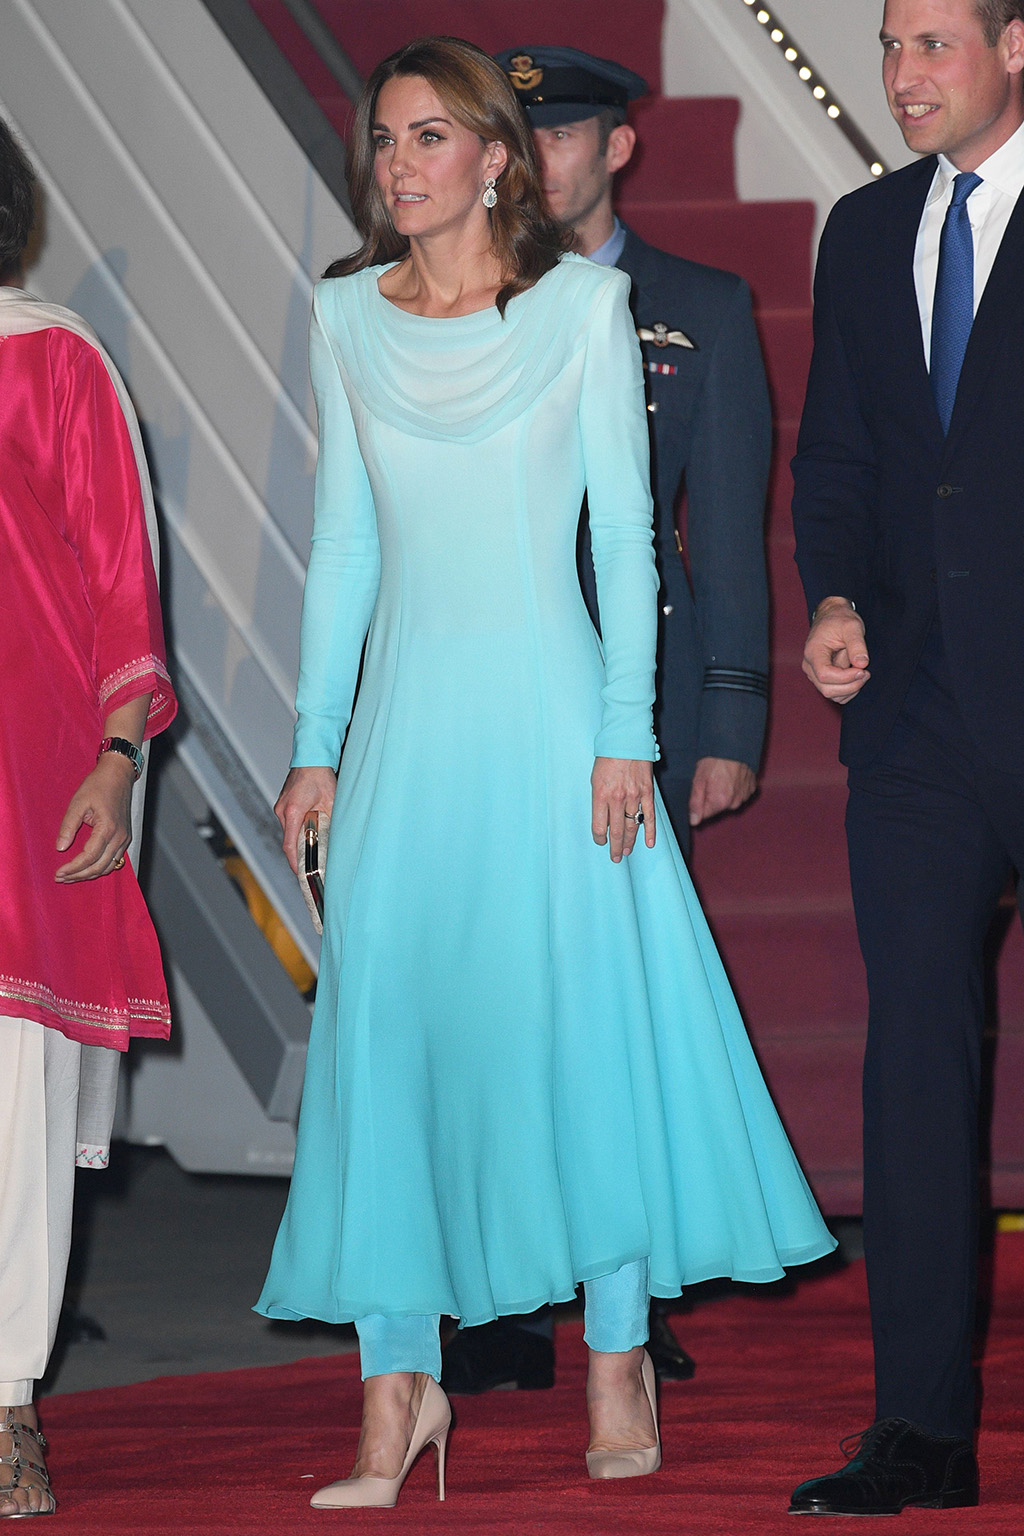 Kate Middleton, Rupert Sanderson shoes, nude pumps, stilettos, blue dress, pants, Catherine walker, Catherine Duchess of CambridgeThe Duke and Duchess of Cambridge visit Pakistan - 14 Oct 2019